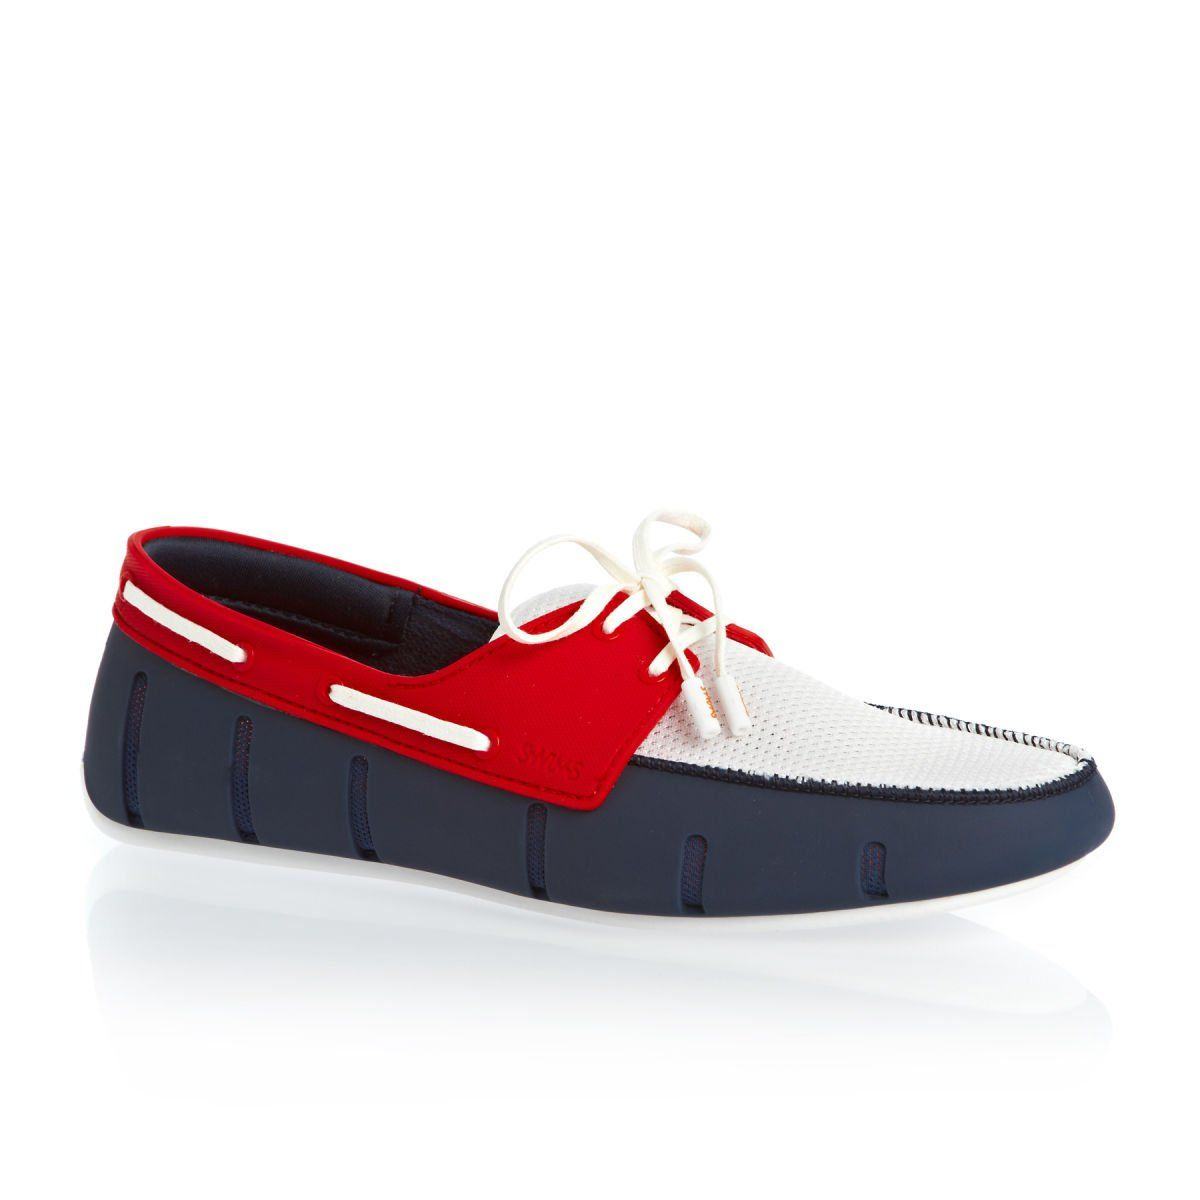 Red Skull Head Breathable Fashion Sneakers Running Shoes Slip-On Loafers Classic Shoes